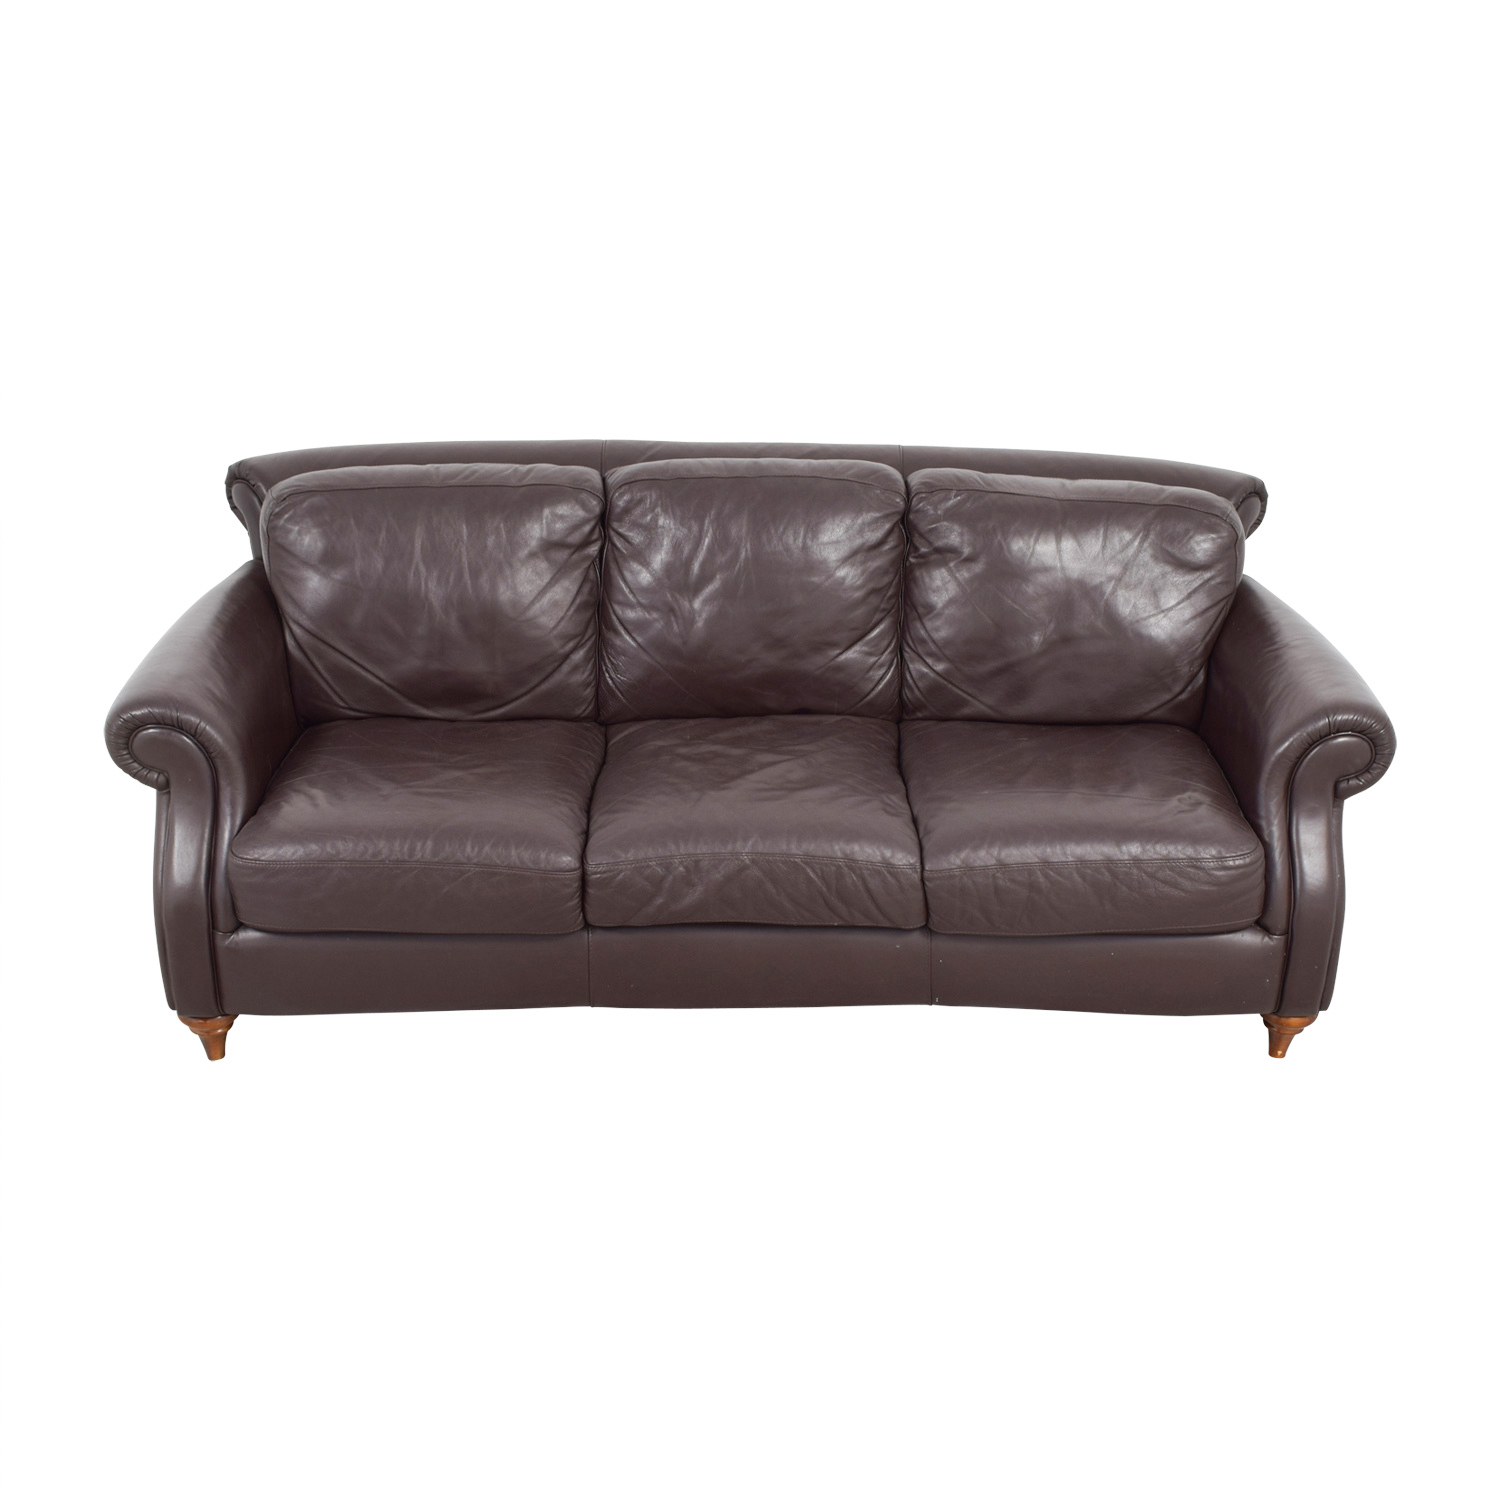 shop Natuzzi Brown Leather Three-Cushion Sofa Natuzzi